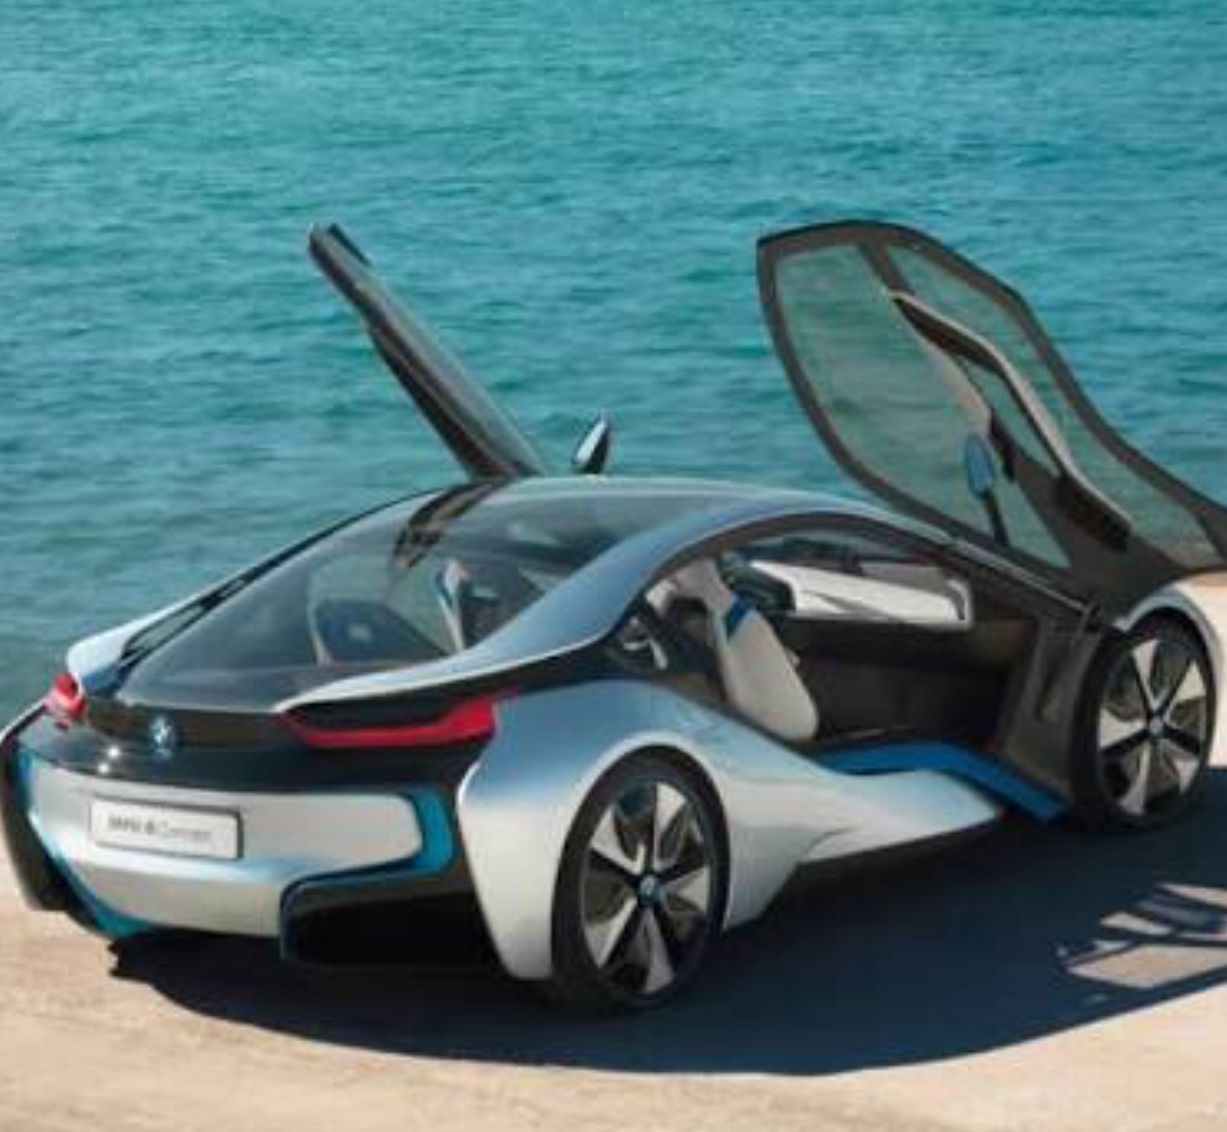 Pin by KentTruong on BMW Bmw i8, Concept cars, Bmw